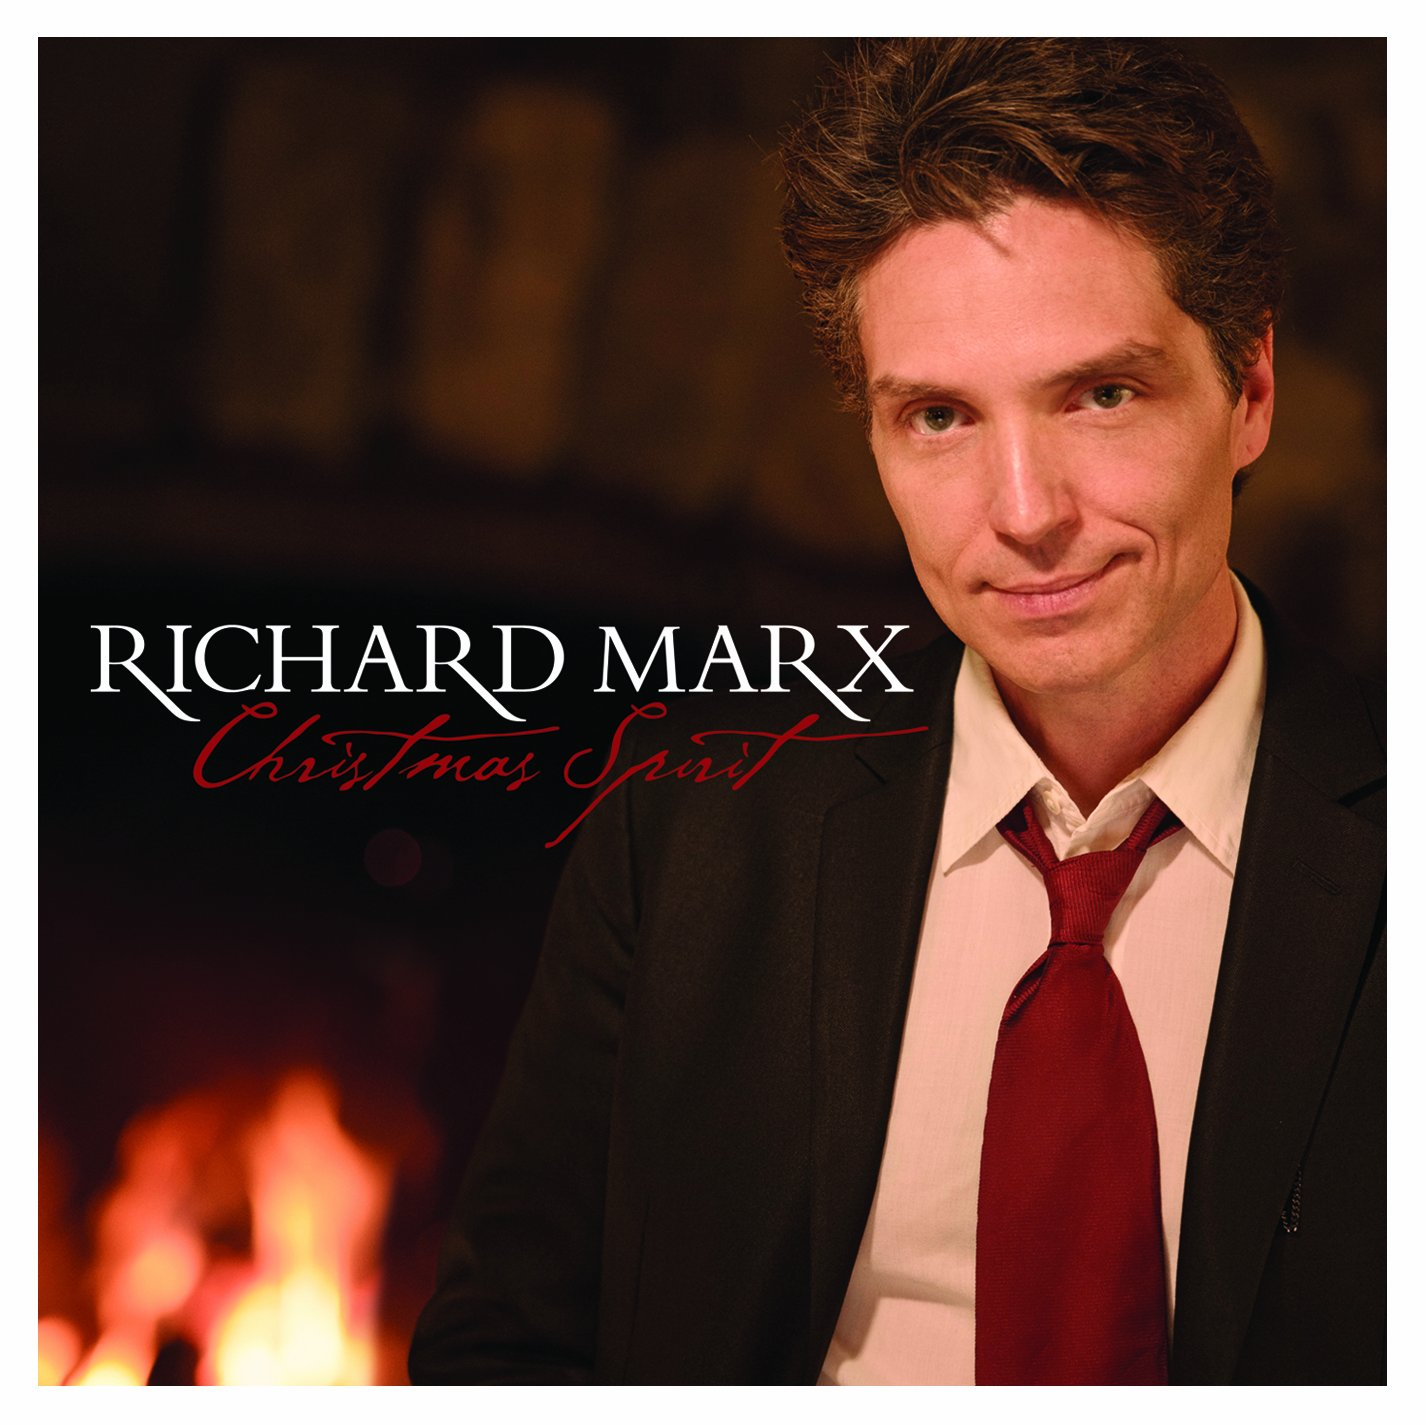 Richard Marx - Christmas Spirit - Amazon.com Music